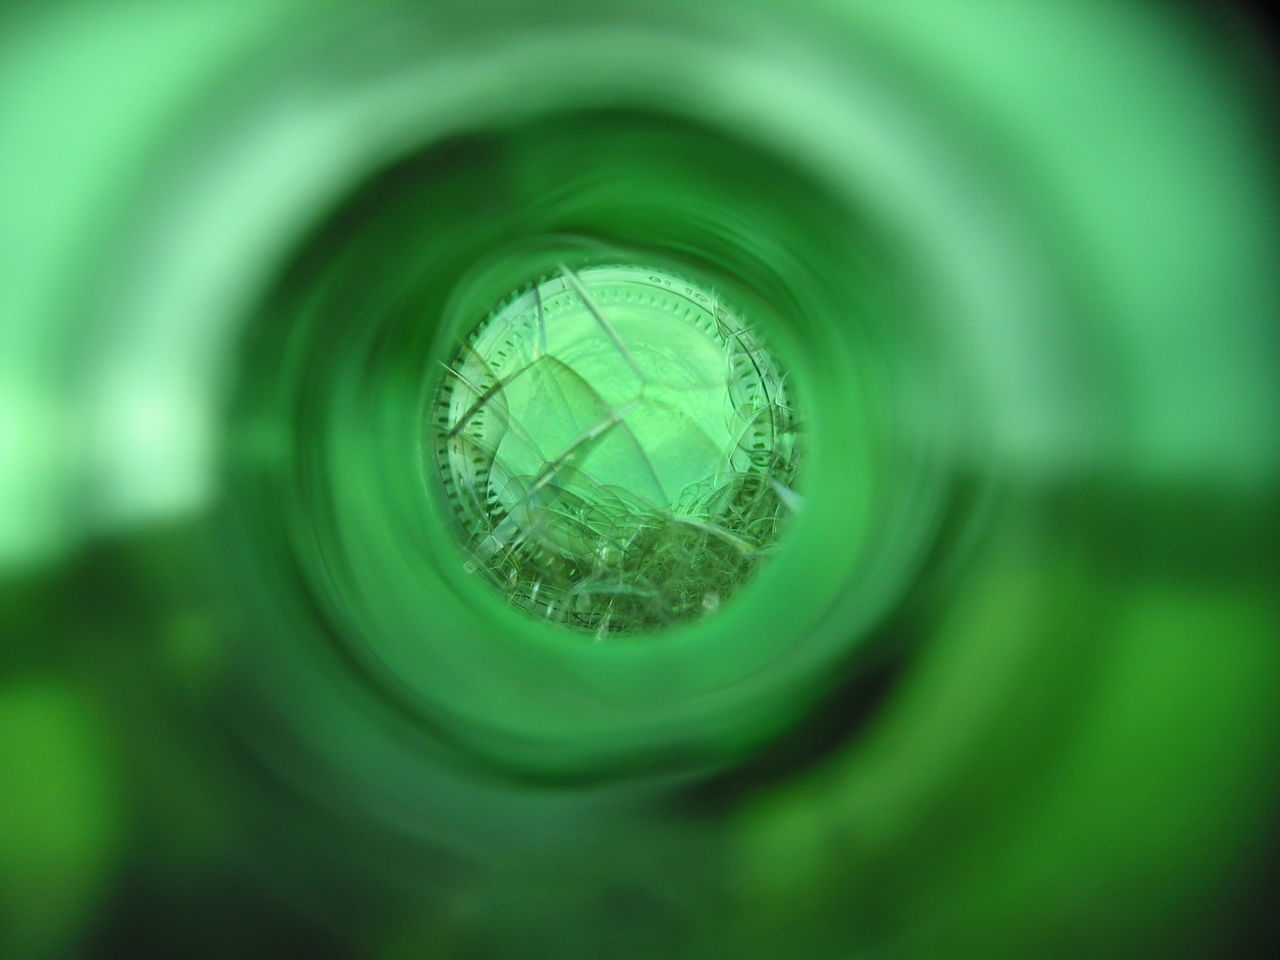 green color, close-up, selective focus, no people, indoors, day